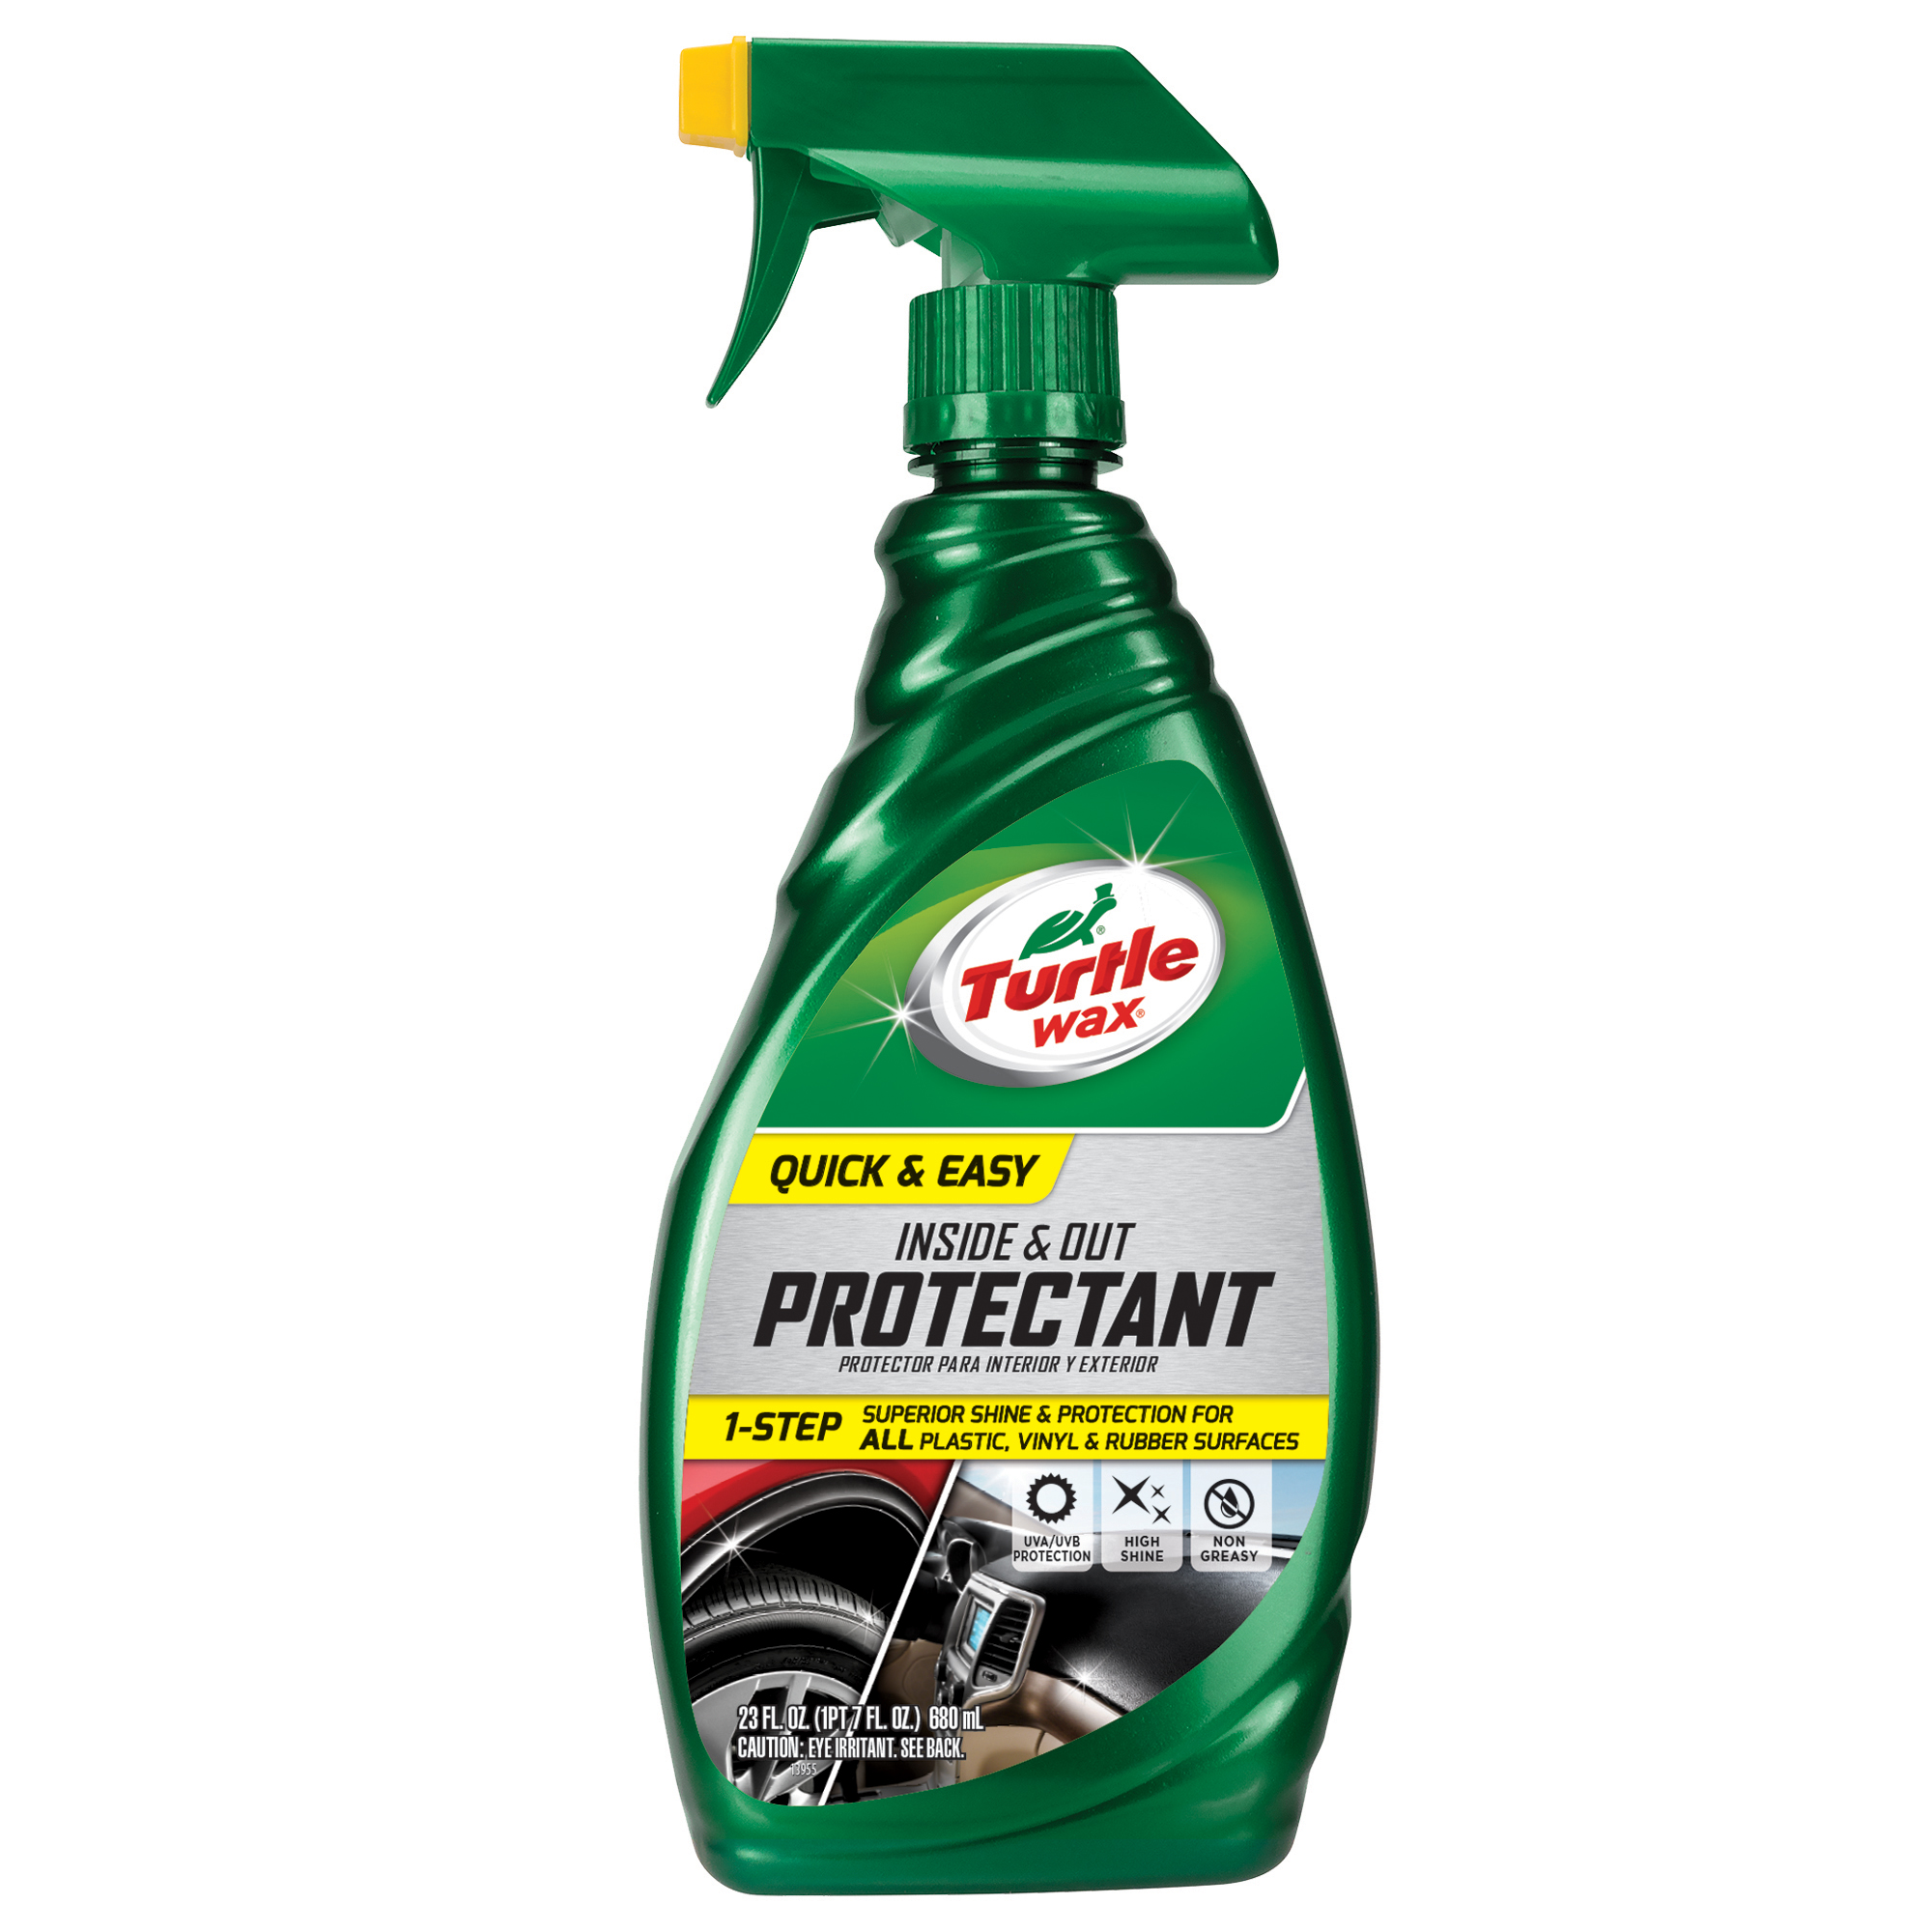 Turtle Wax 50802 Quick and Easy Inside and Out Protectant, 23 oz